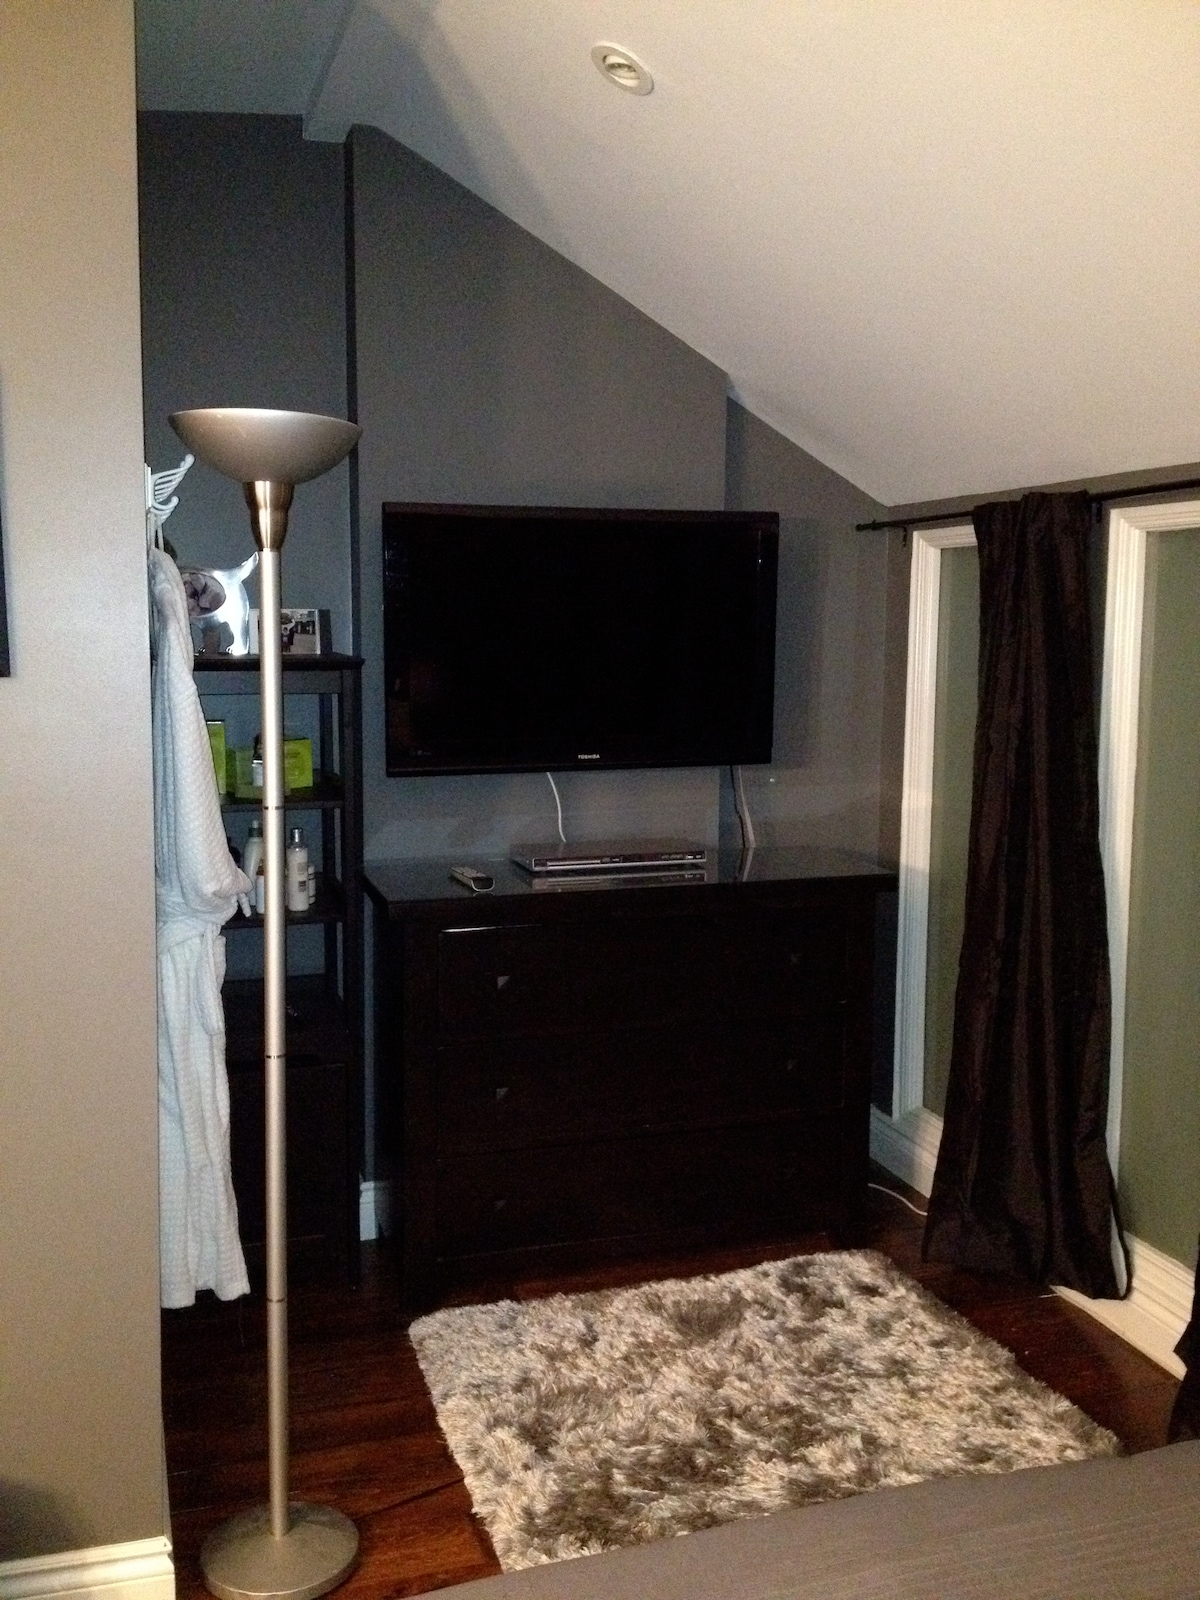 Cable TV and Dresser